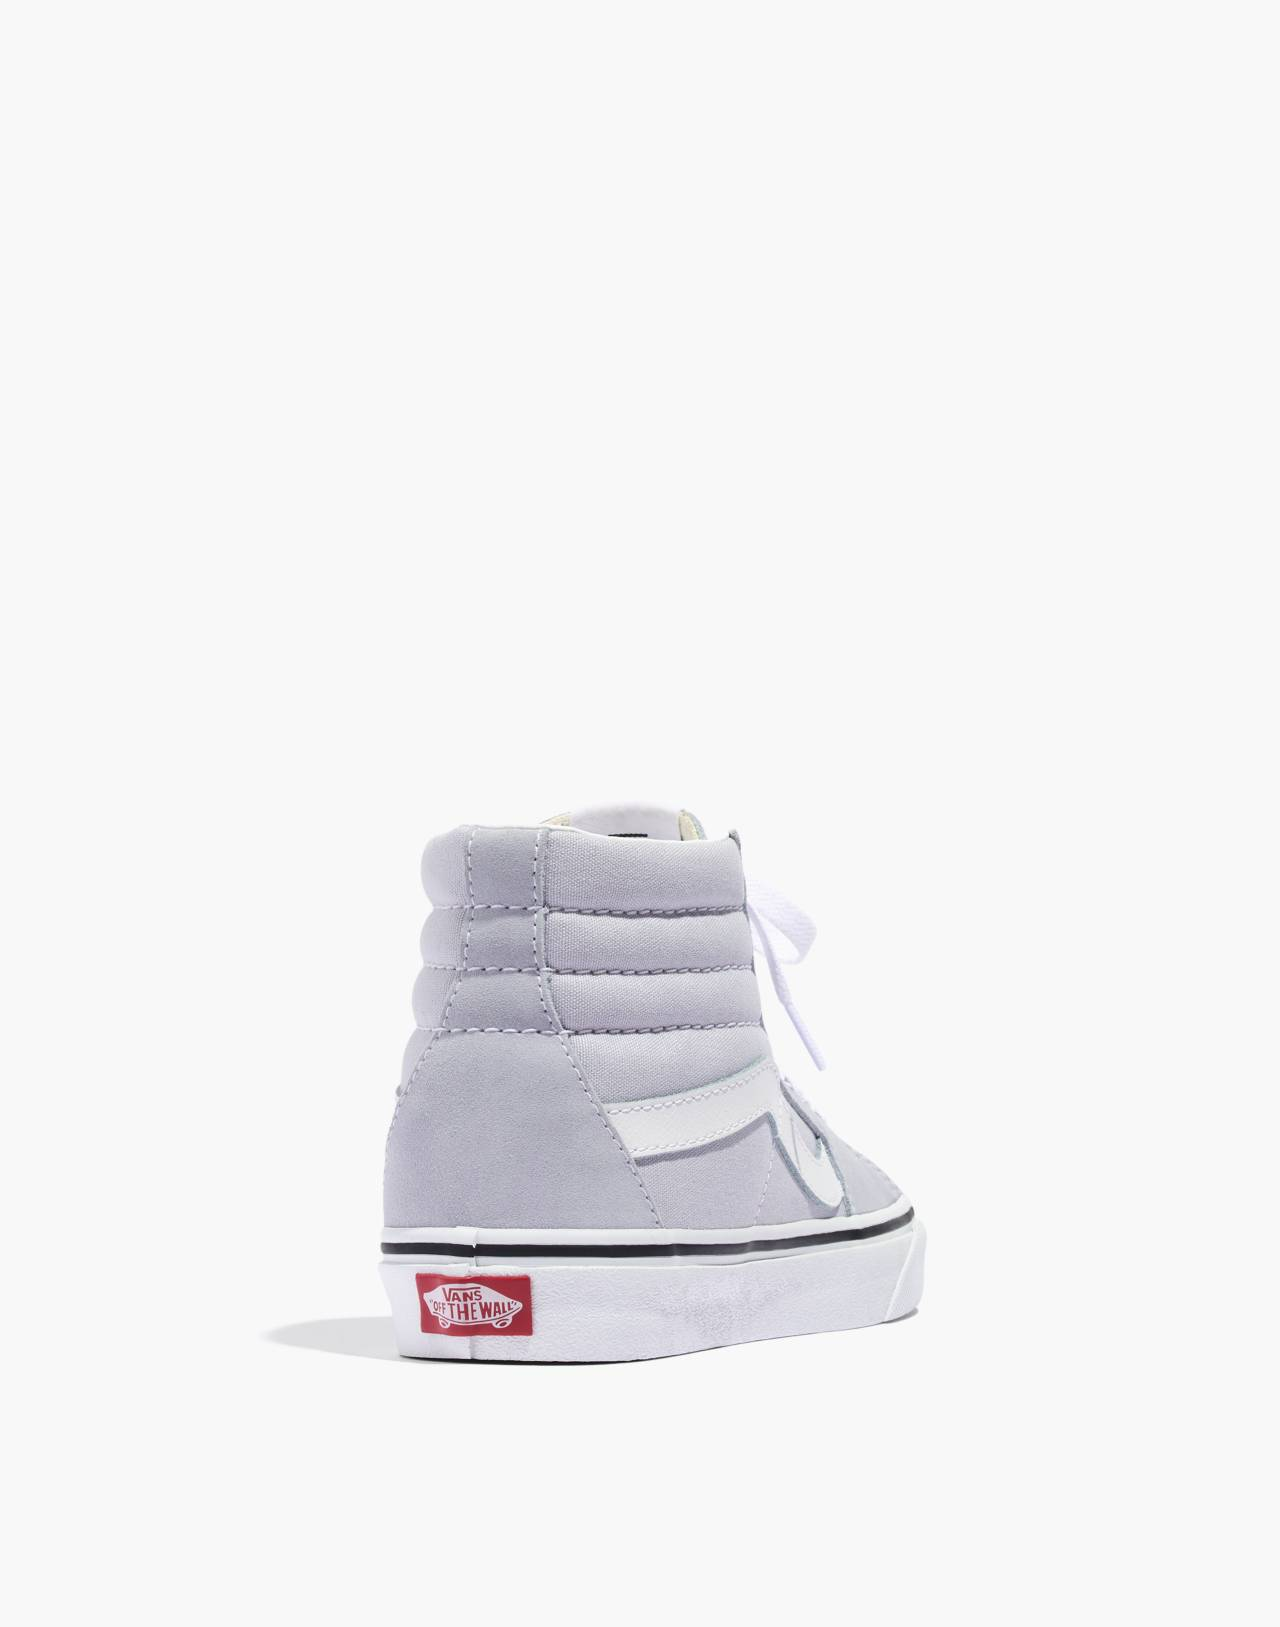 Vans® Sk8-Hi High-Top Sneakers in Canvas and Suede in gray dawn/true white image 4